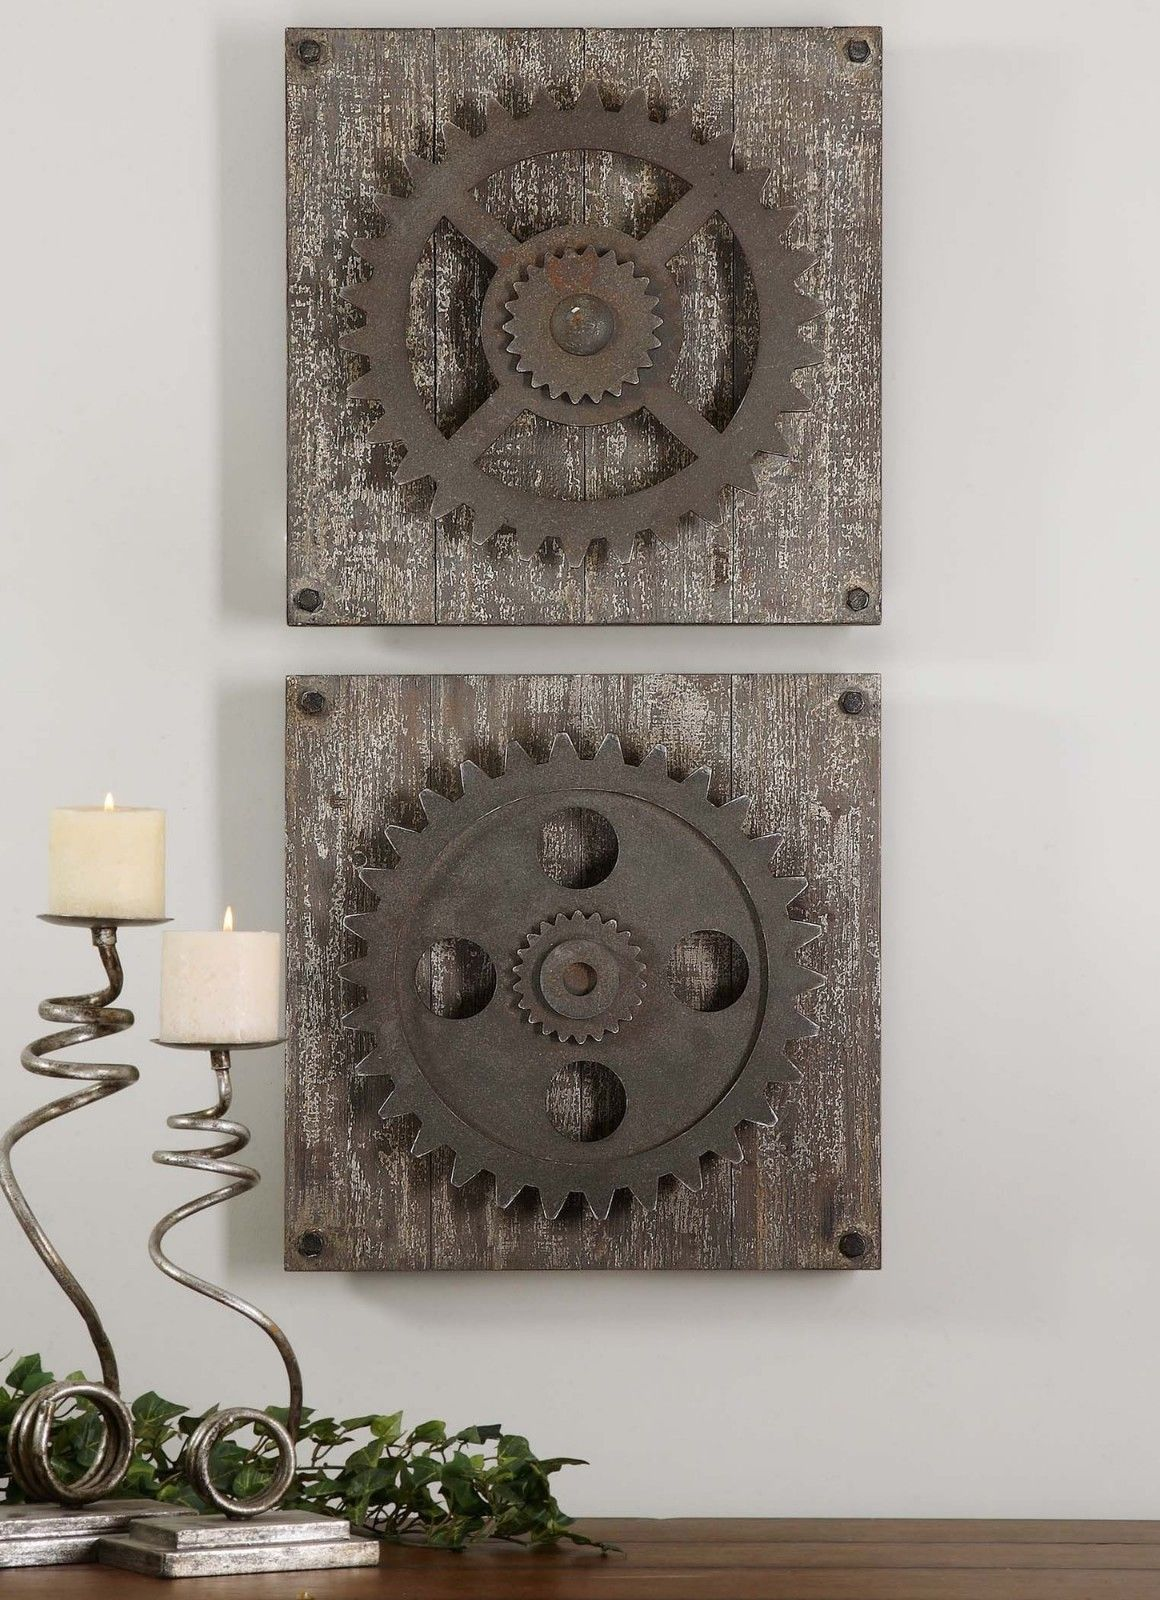 Urban Industrial Loft Steampunk Decor Rusty Gears Cogs 3D Wall Art Sculpture